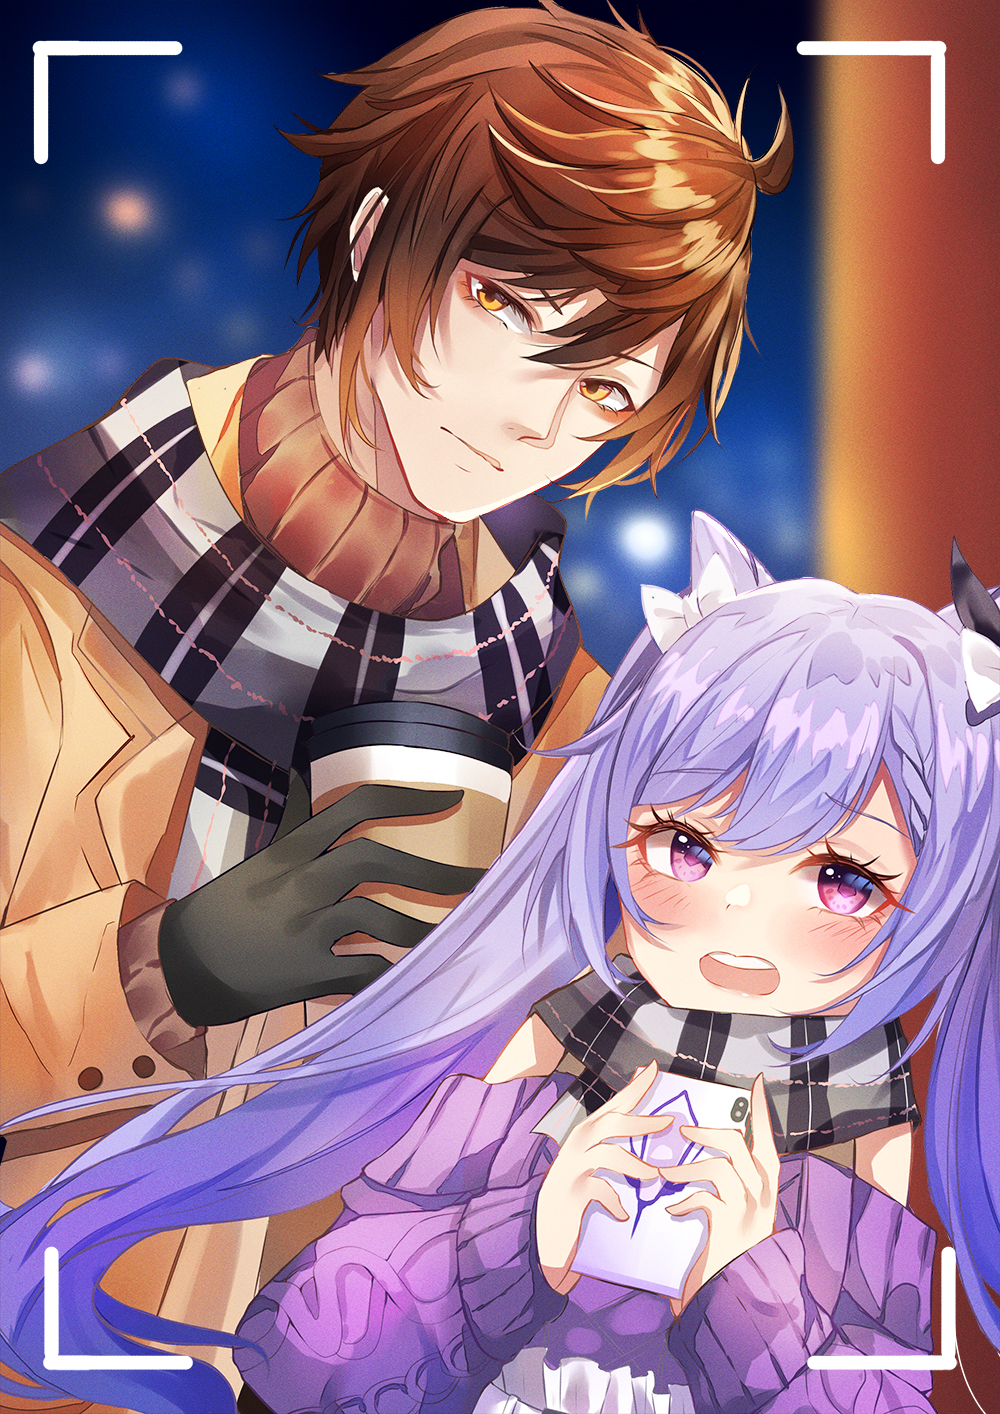 1boy 1girl black_hair blush bow braid cup double_bun eyelashes genshin_impact gloves hair_bow hair_bun half-closed_eyes haruka_ayane highres holding holding_cup holding_phone jacket keqing_(genshin_impact) long_sleeves looking_at_viewer open_clothes open_jacket phone purple_hair purple_sweater scarf skirt smile sweater twintails violet_eyes winter_clothes yellow_eyes zhongli_(genshin_impact)